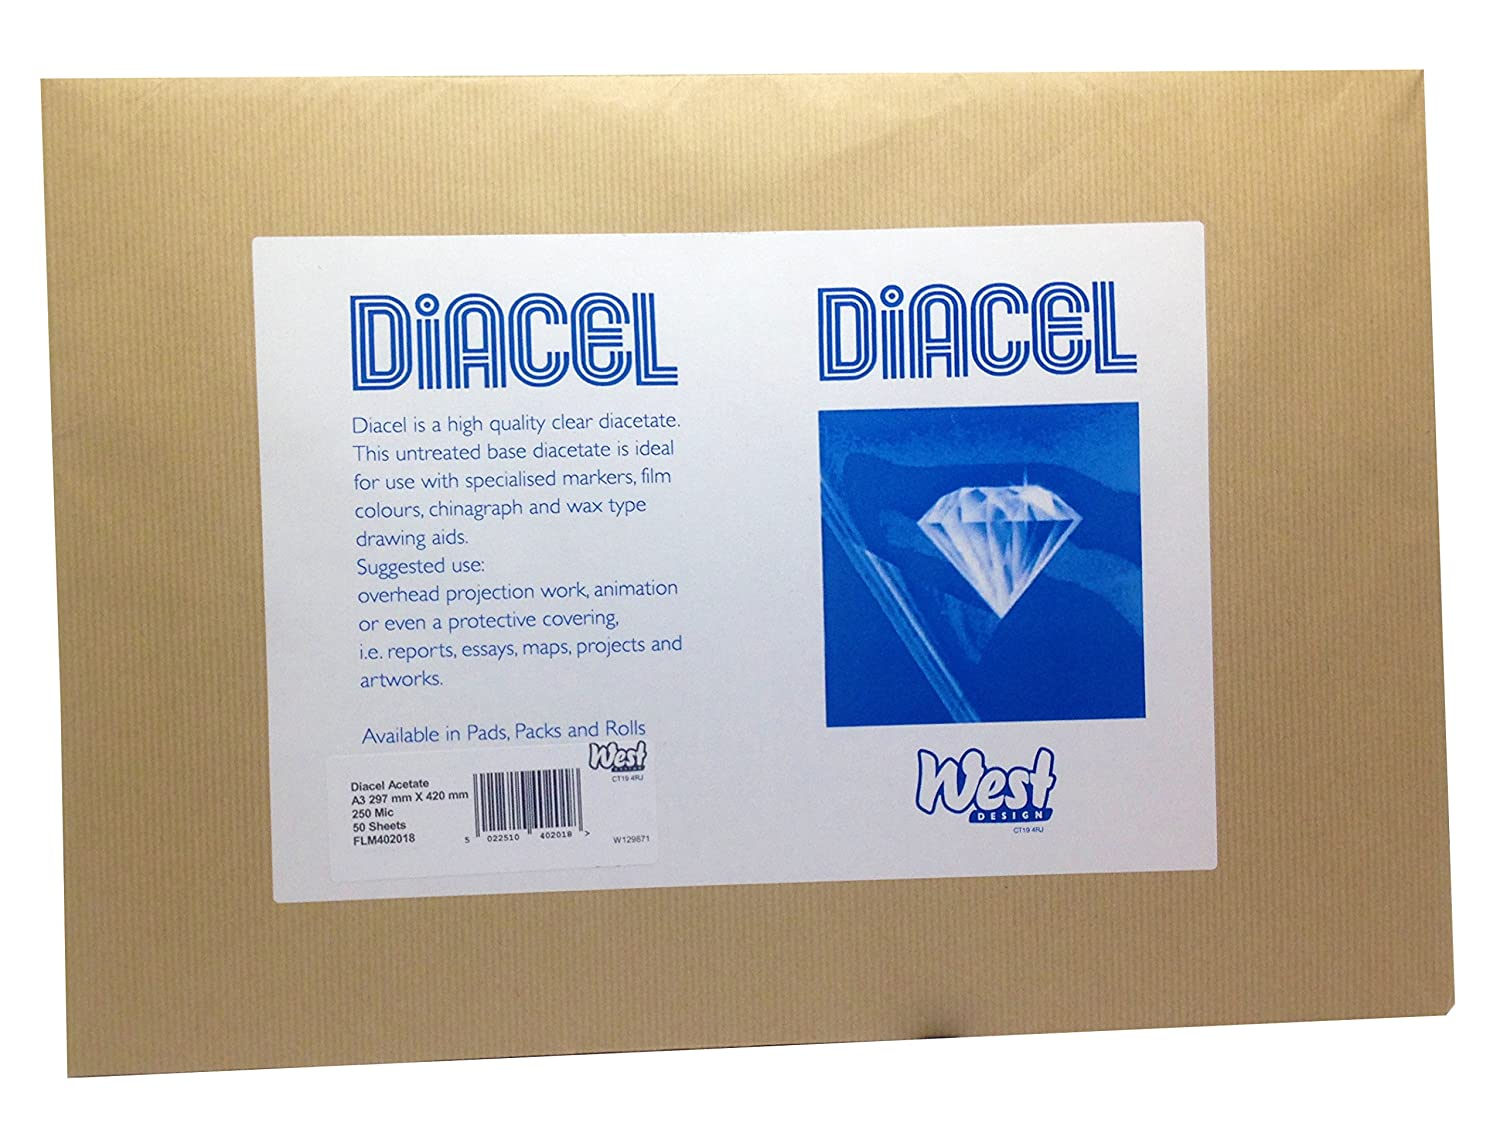 Diacel Crystal Clear Diacetate Film Pad A4